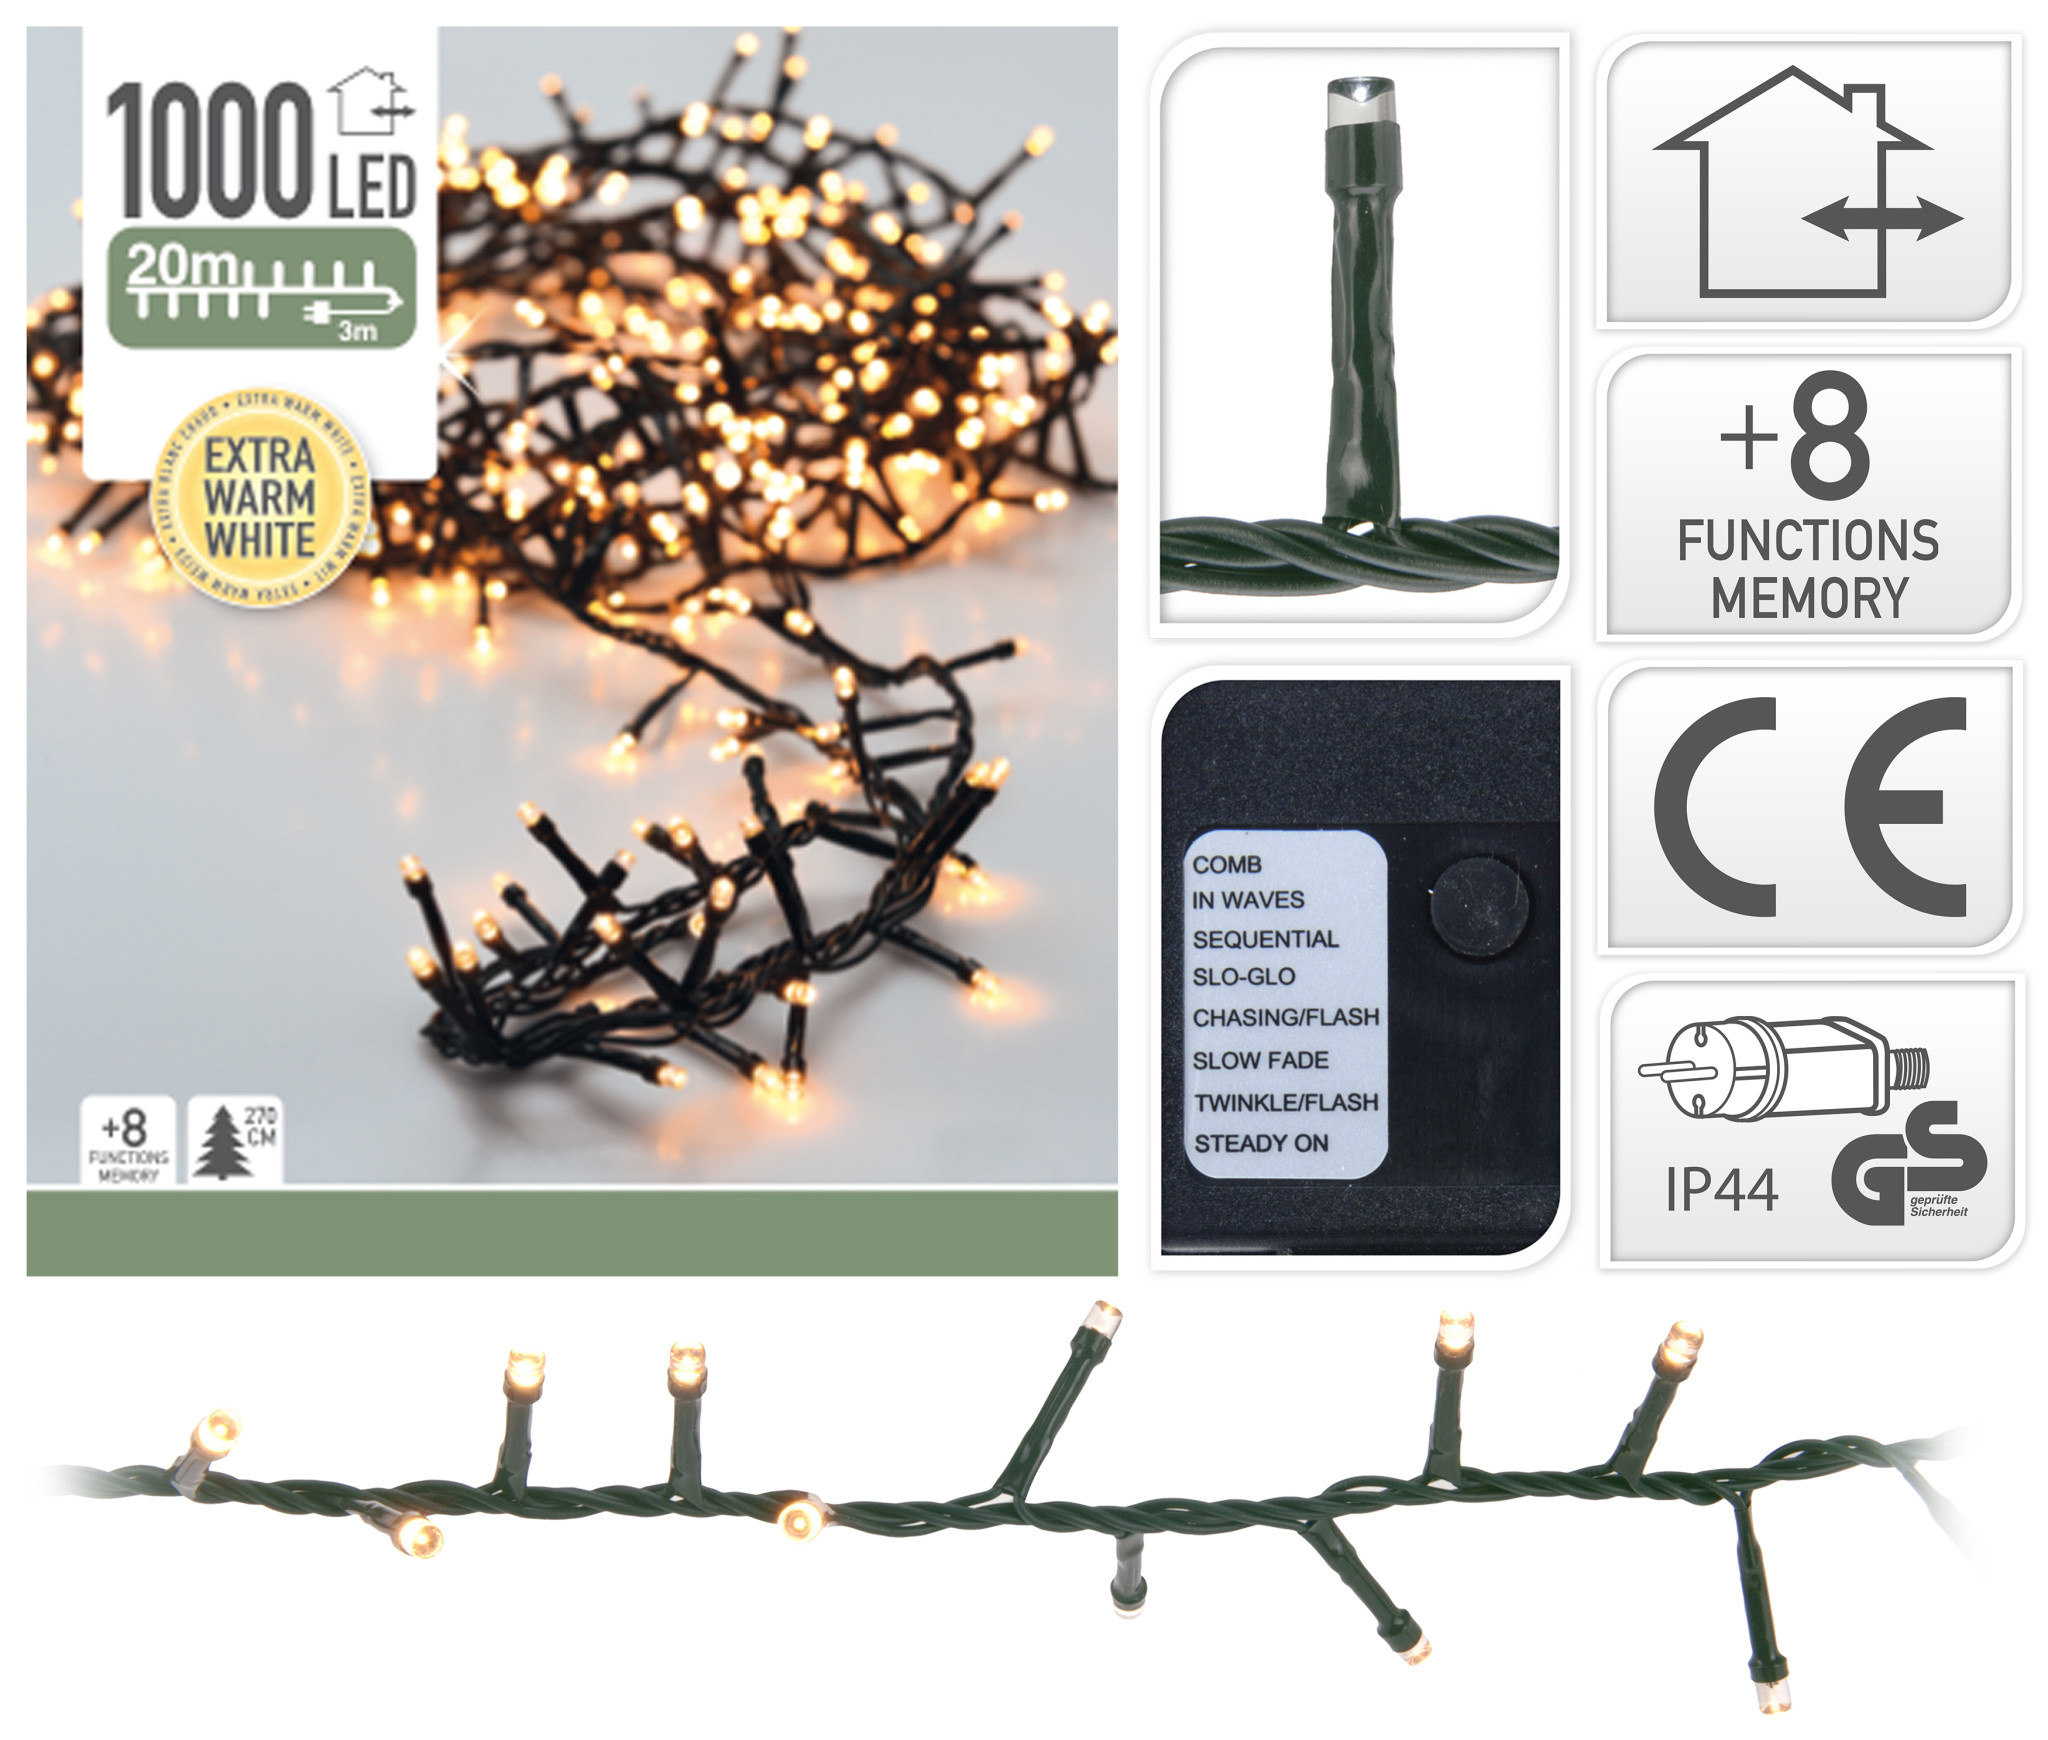 MICROCLUSTER 1000LED EXTRA WW-1